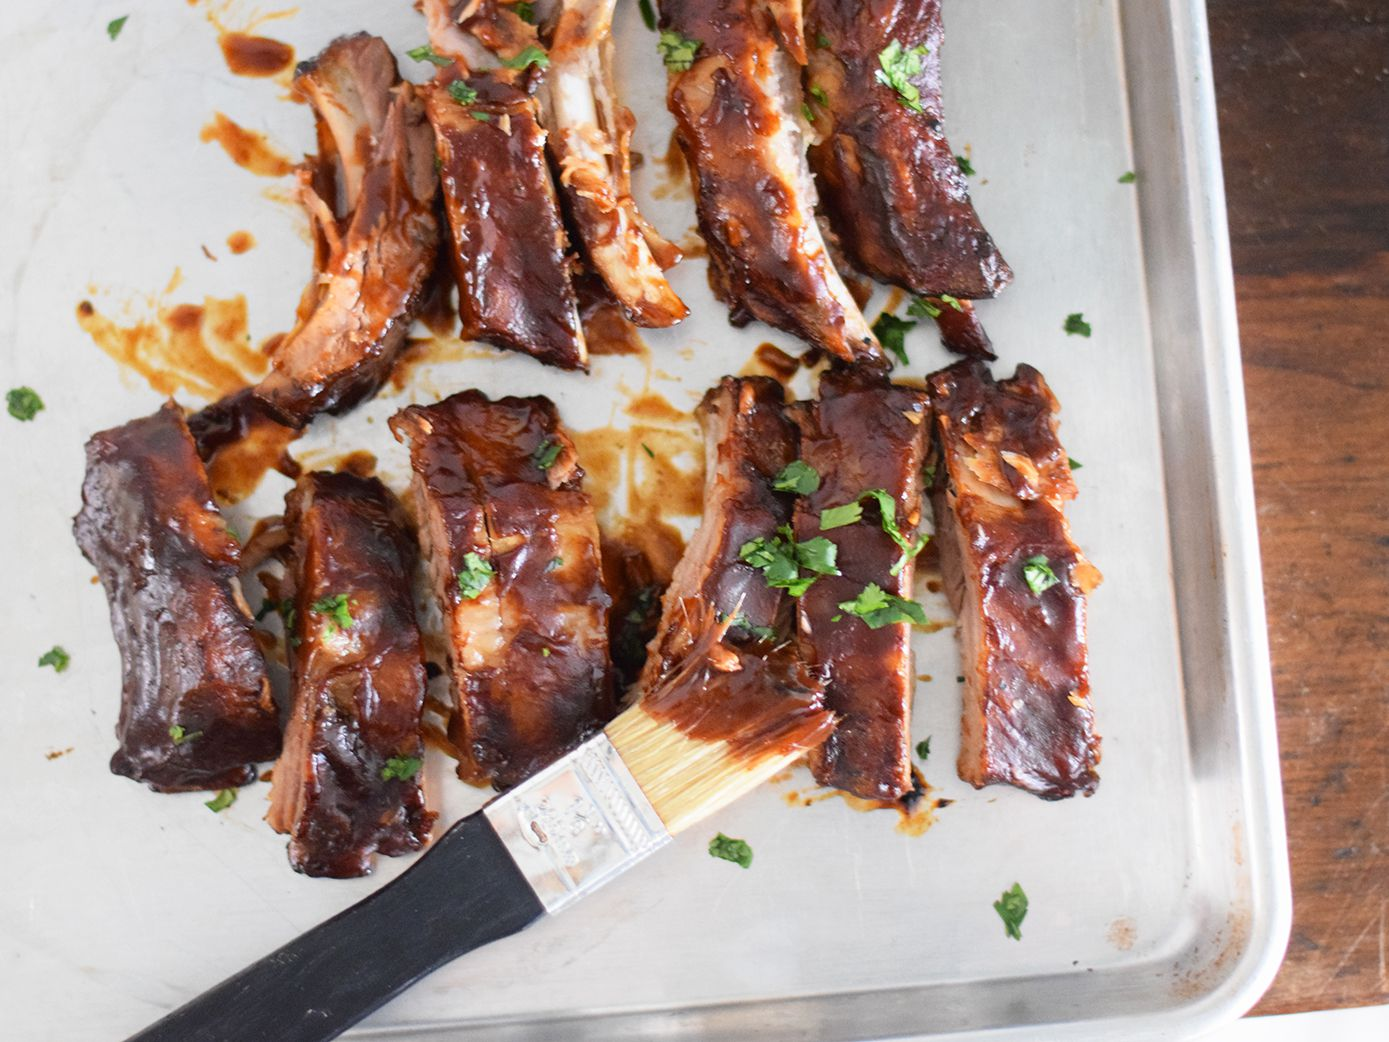 Cook Barbecue Ribs On A Gas Grill,Beekeeping Supplies